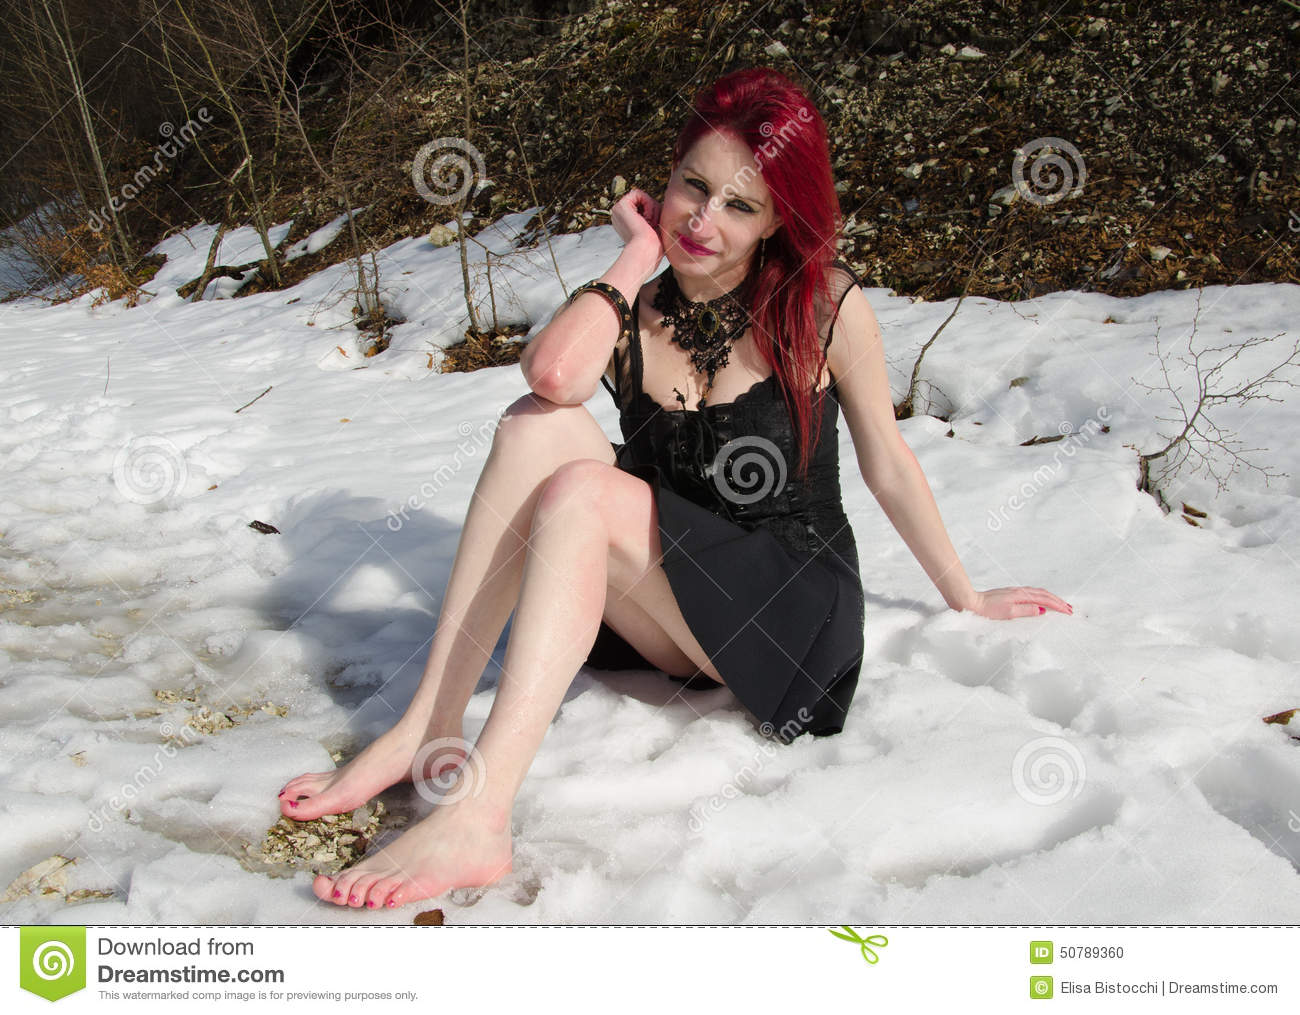 https://thumbs.dreamstime.com/z/hot-woman-snow-sitting-50789360.jpg